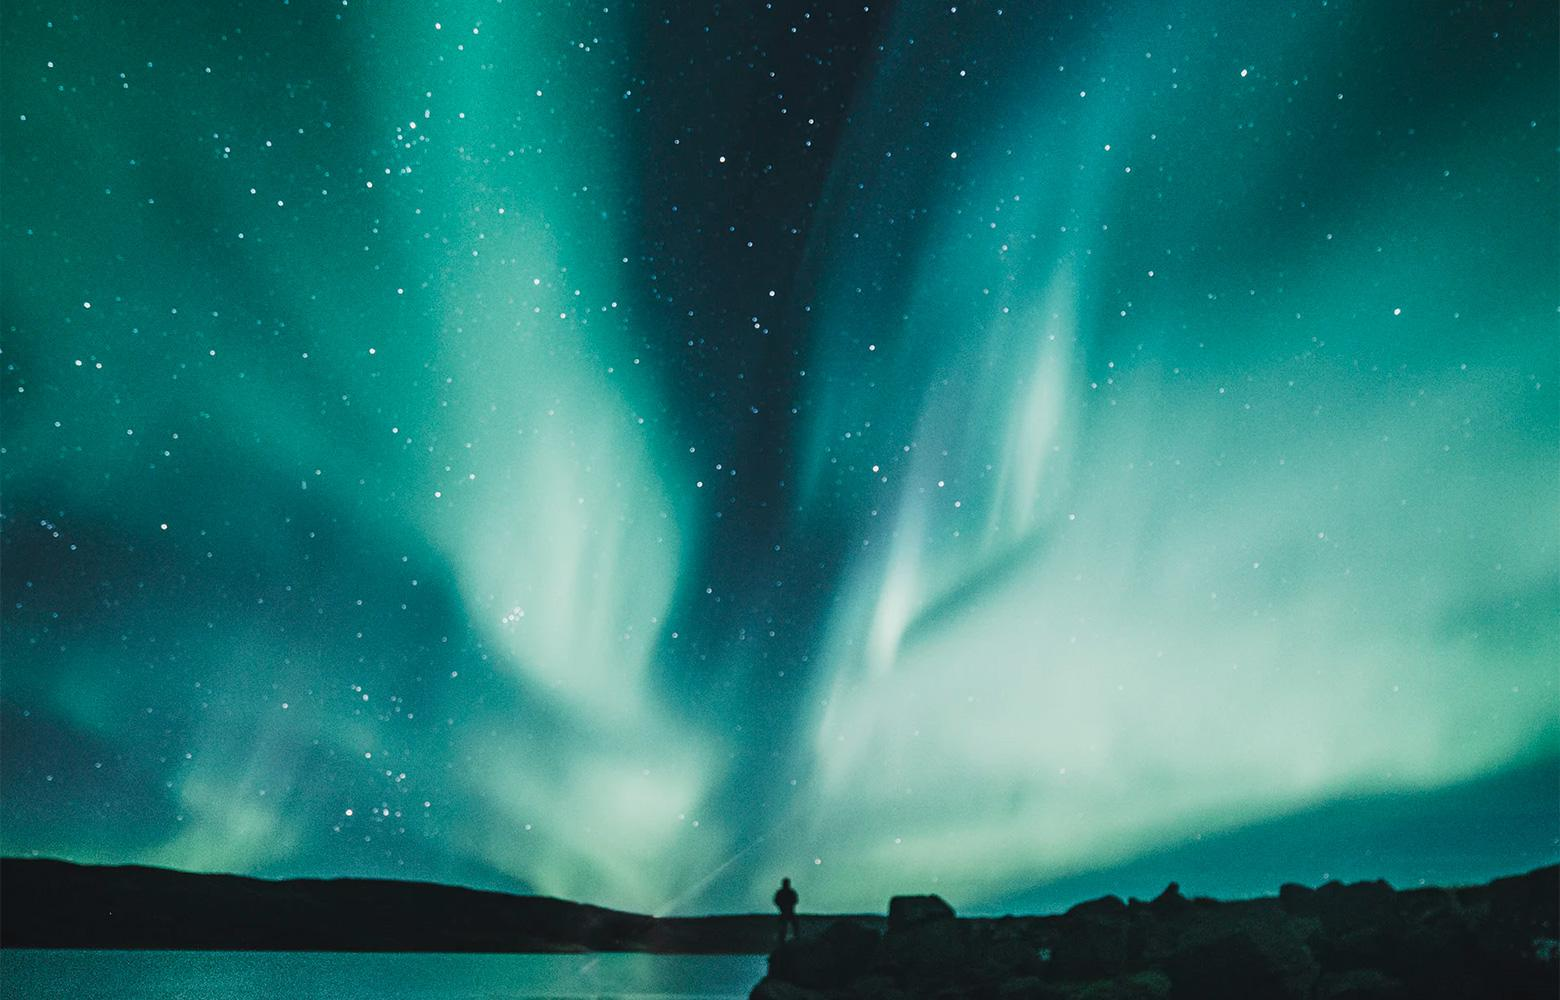 The northern lights can sometimes include the color of the year 2020